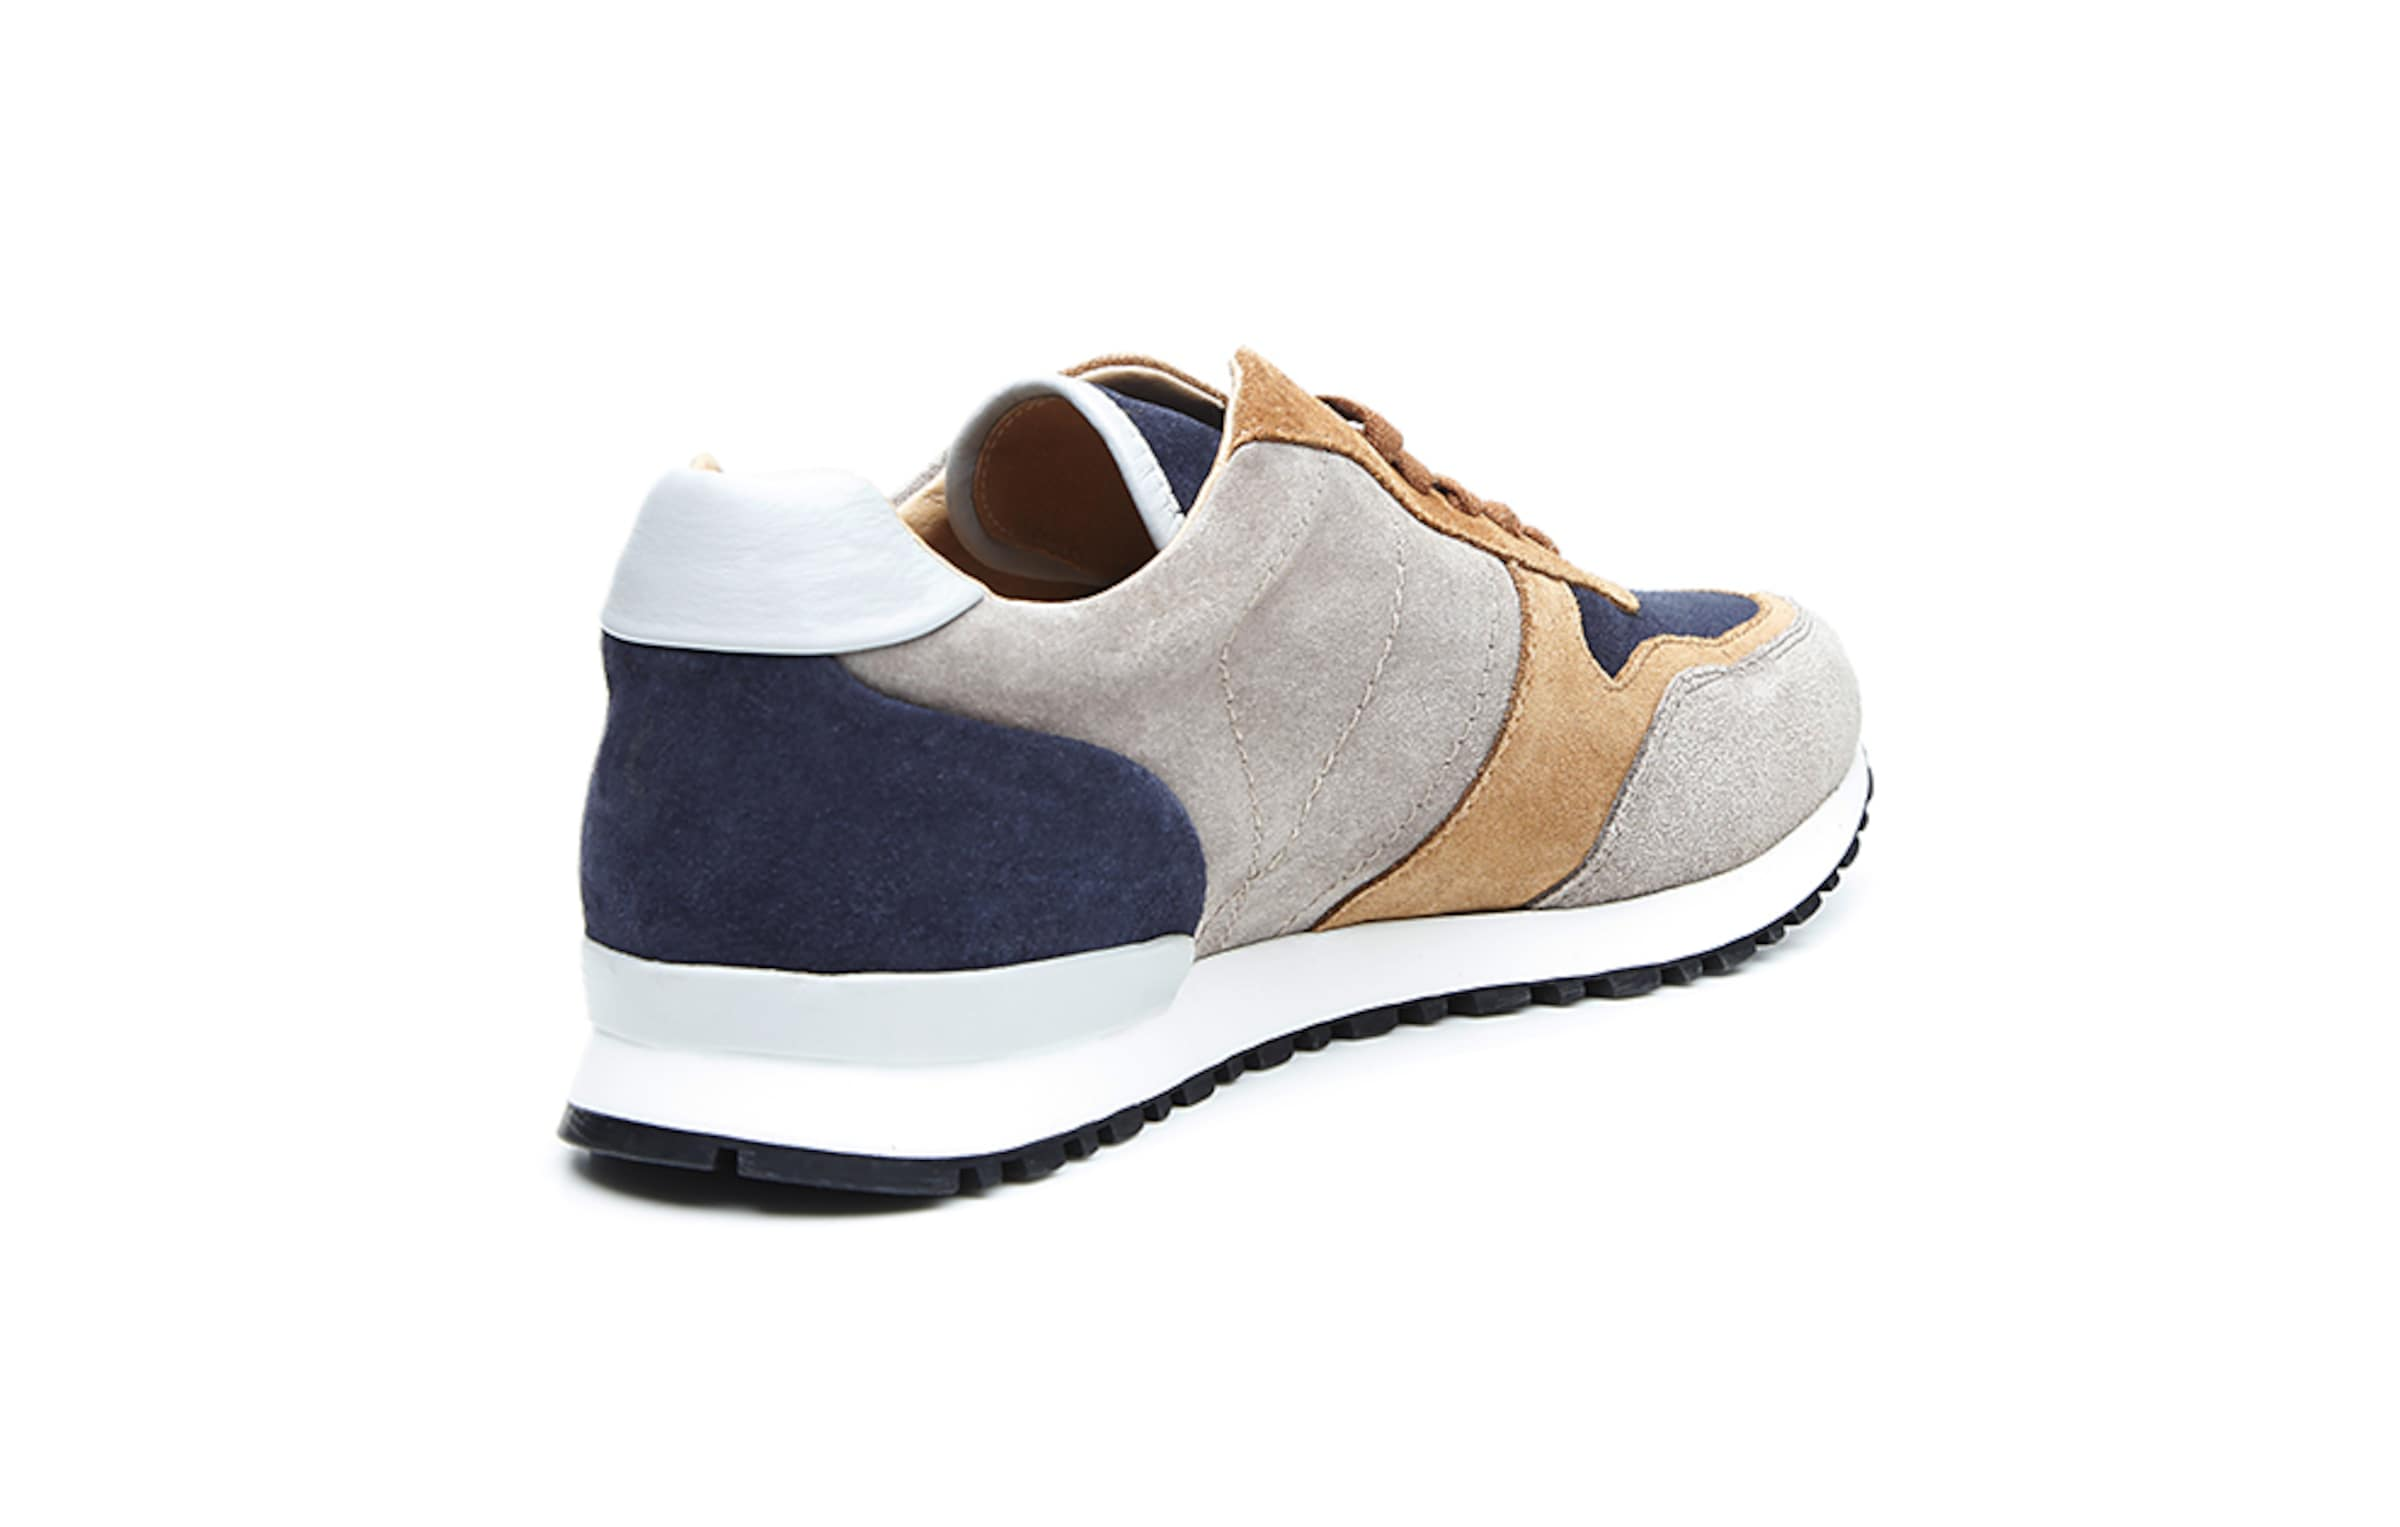 Ms' SandBlau 'no17 Taupe Sneaker In Shoepassion FlKcT1J